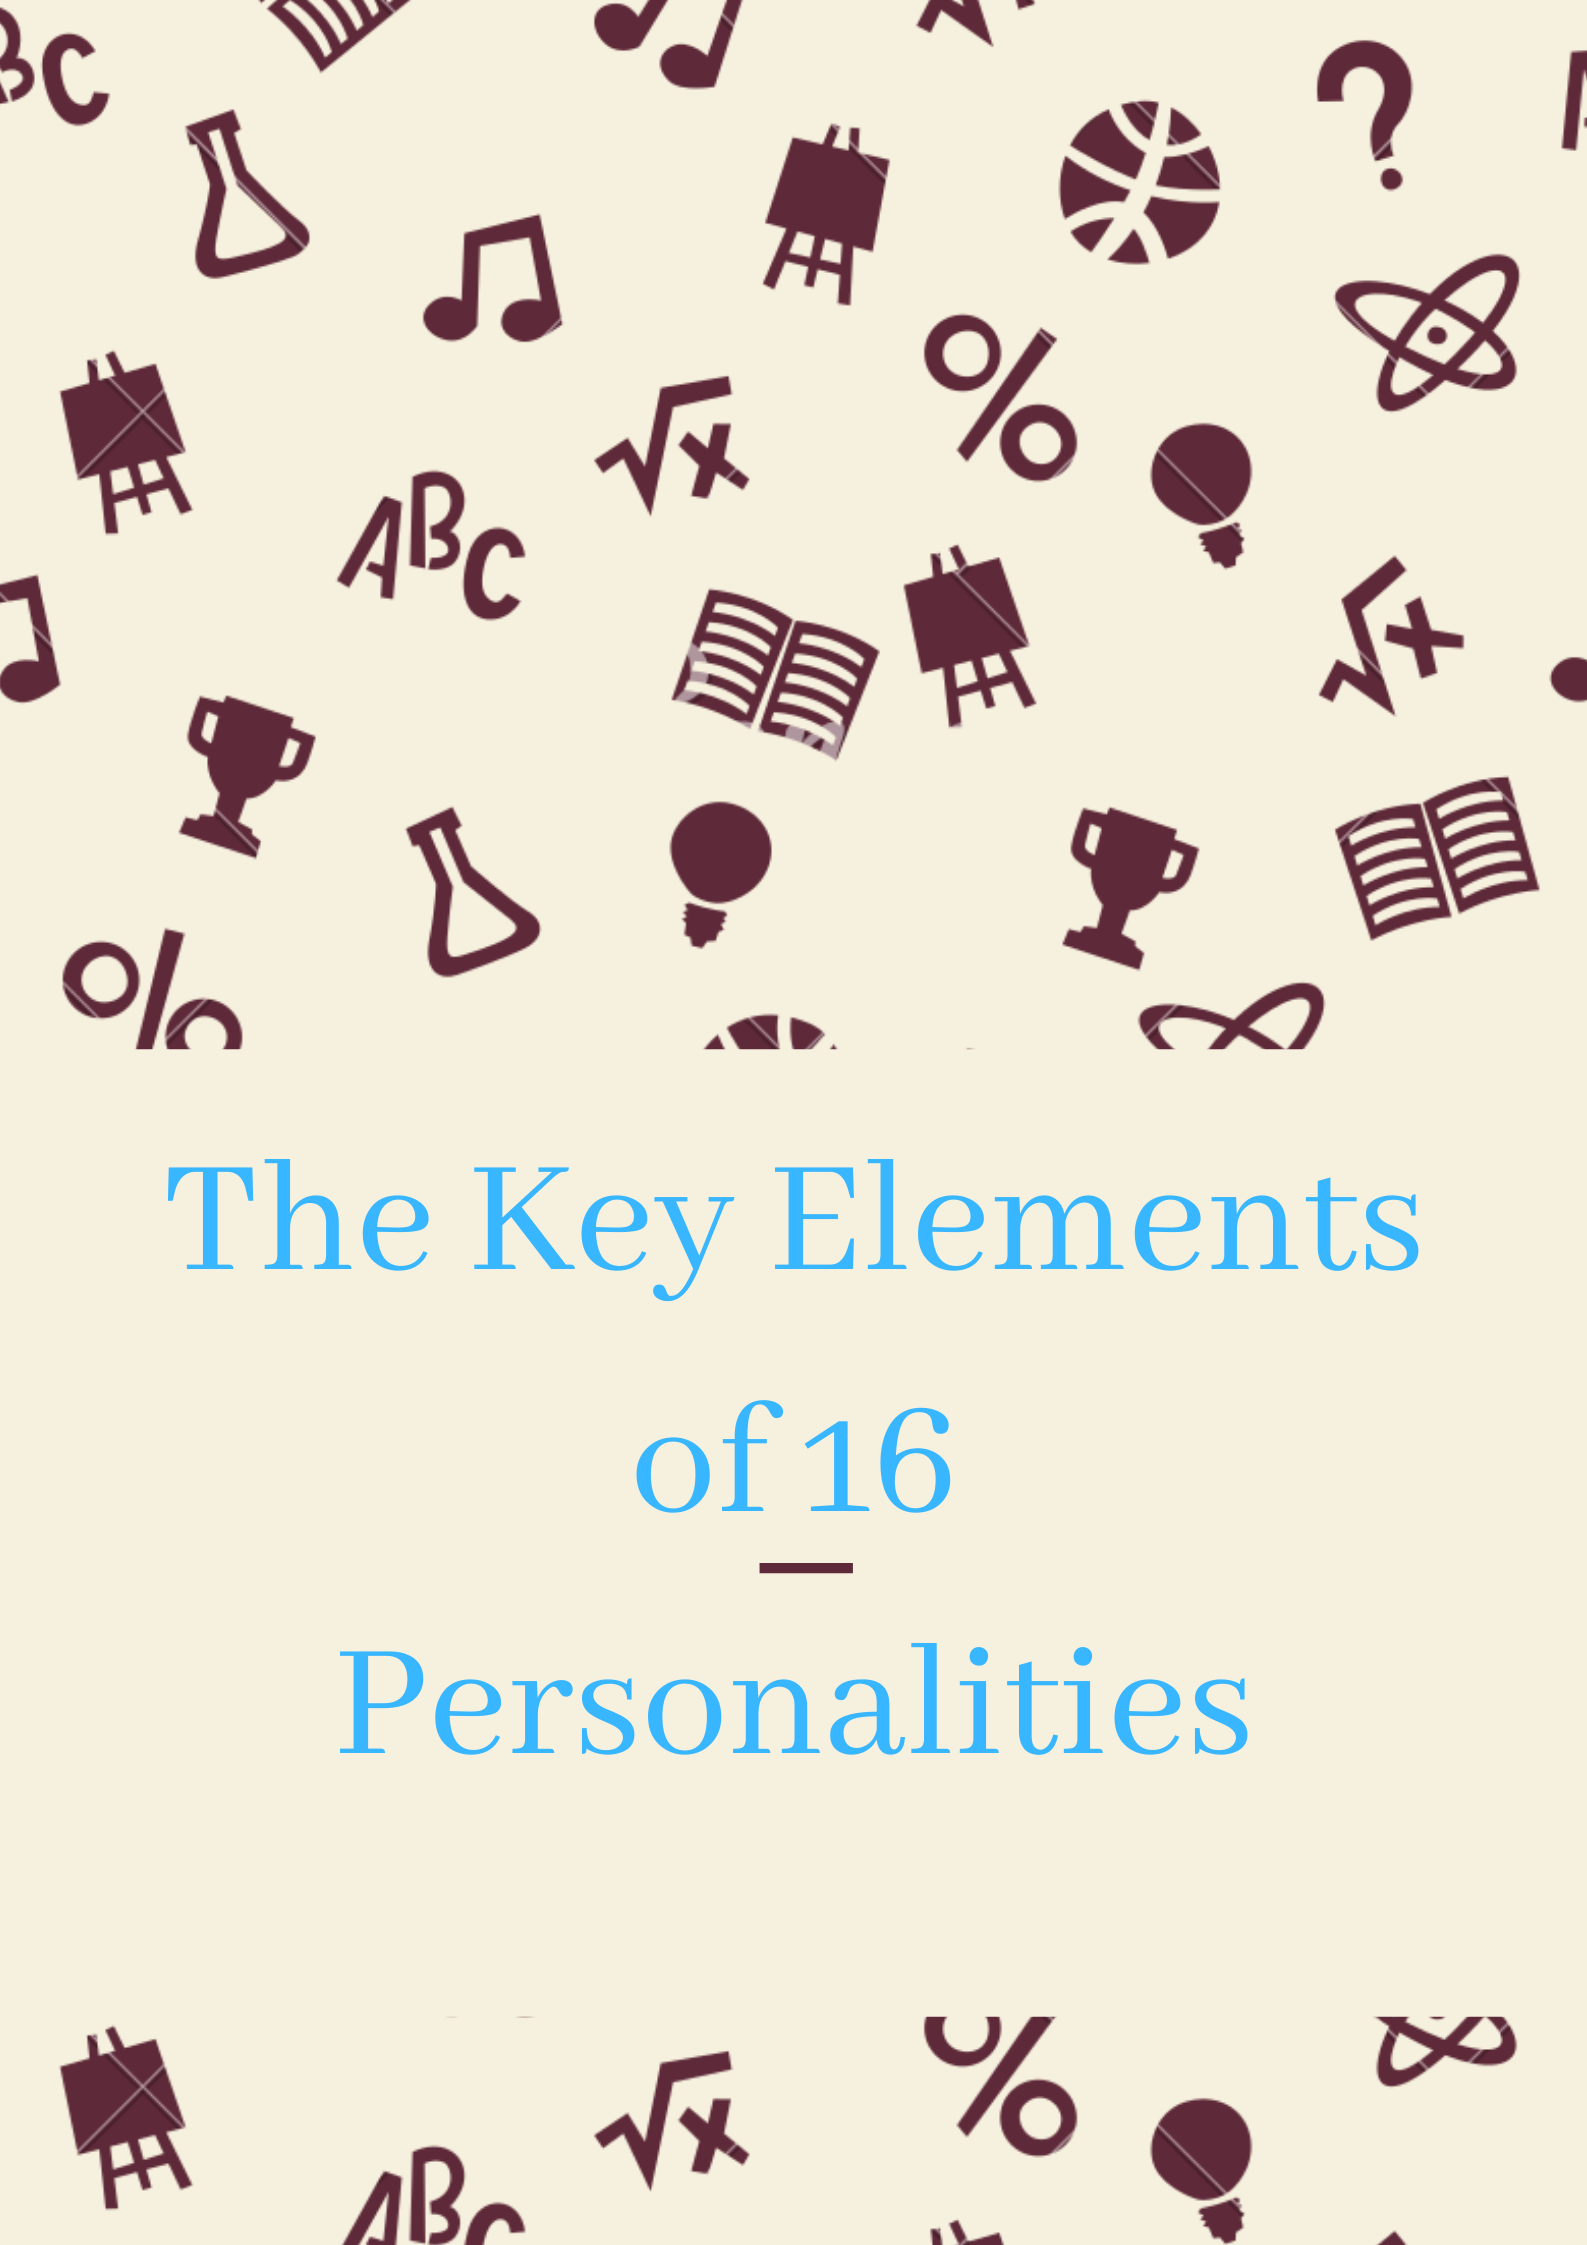 The Key Elements of 16 Personalities.png